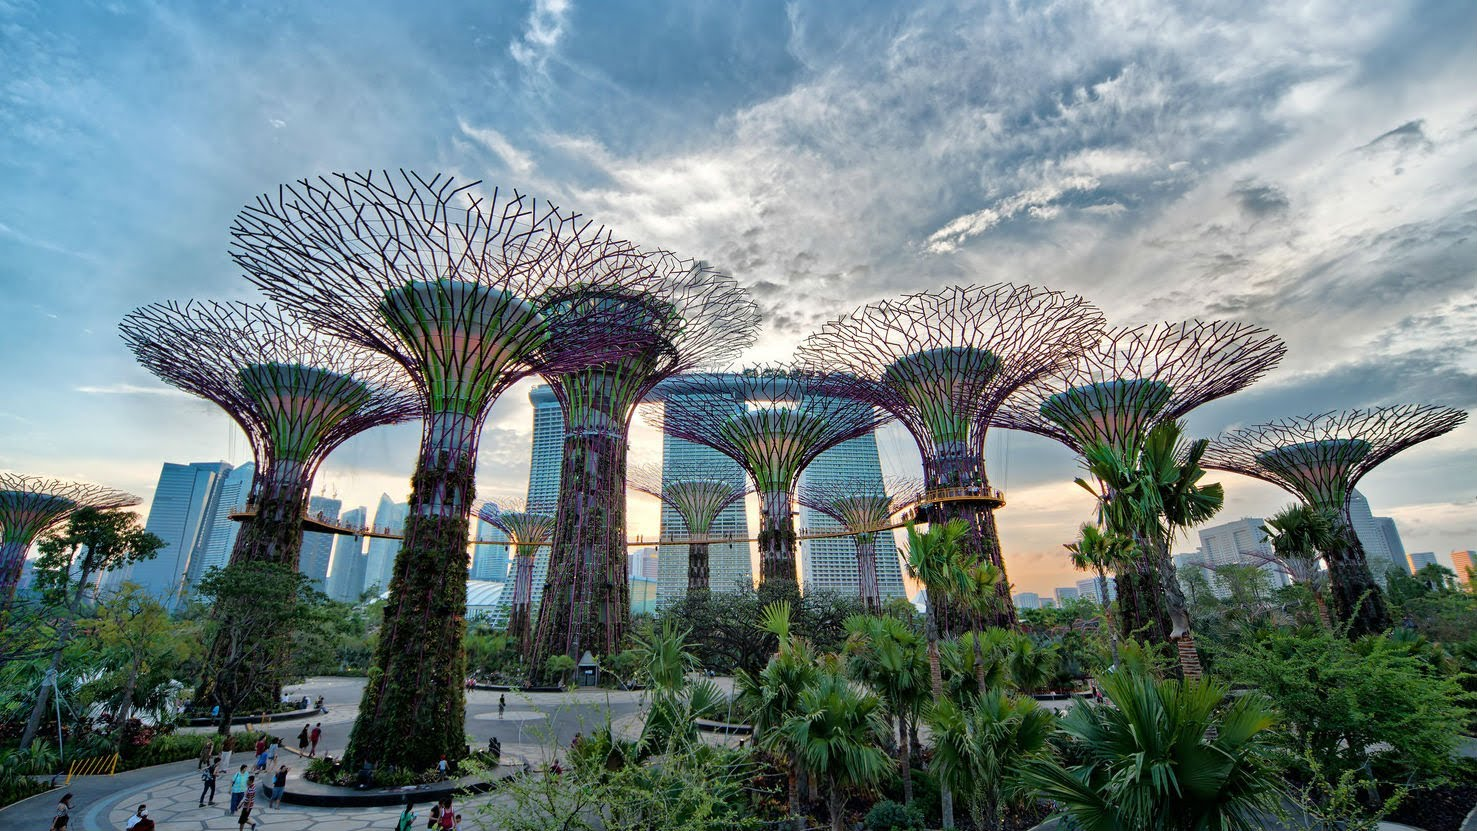 Gardens by the Bay (ผู้ใหญ่)